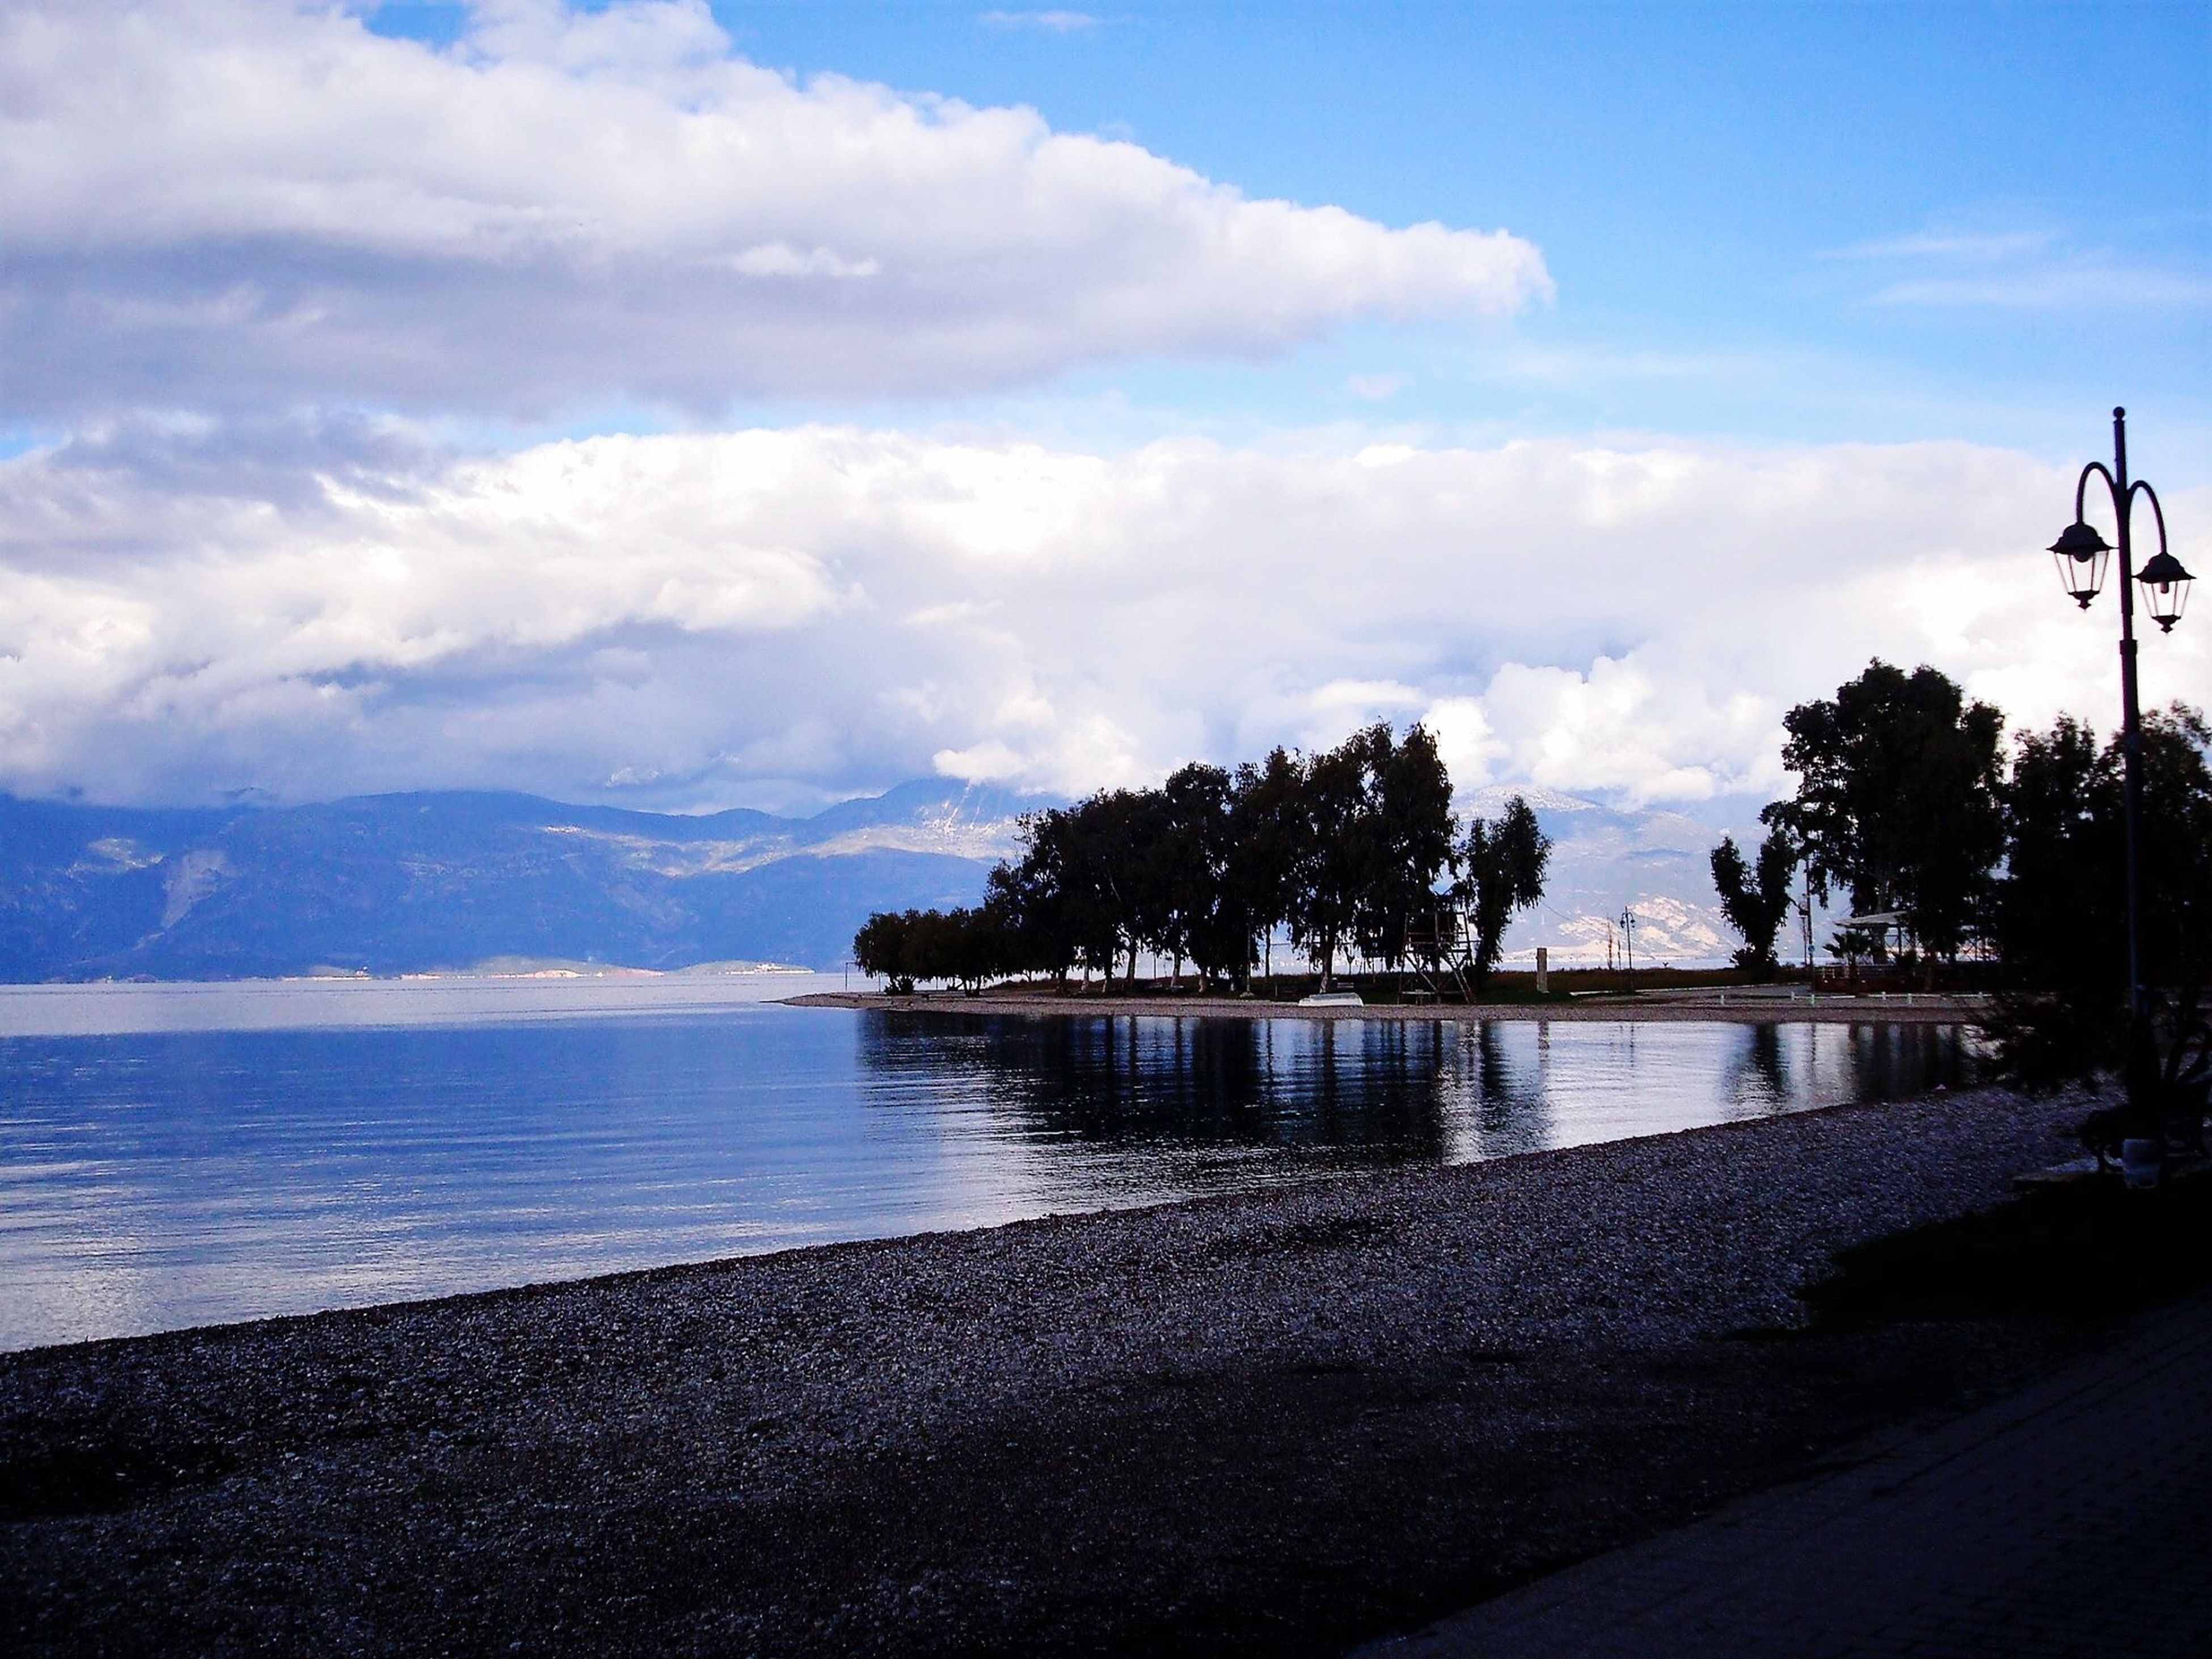 sky, tree, water, sea, nature, cloud - sky, beauty in nature, outdoors, beach, growth, scenics, no people, day